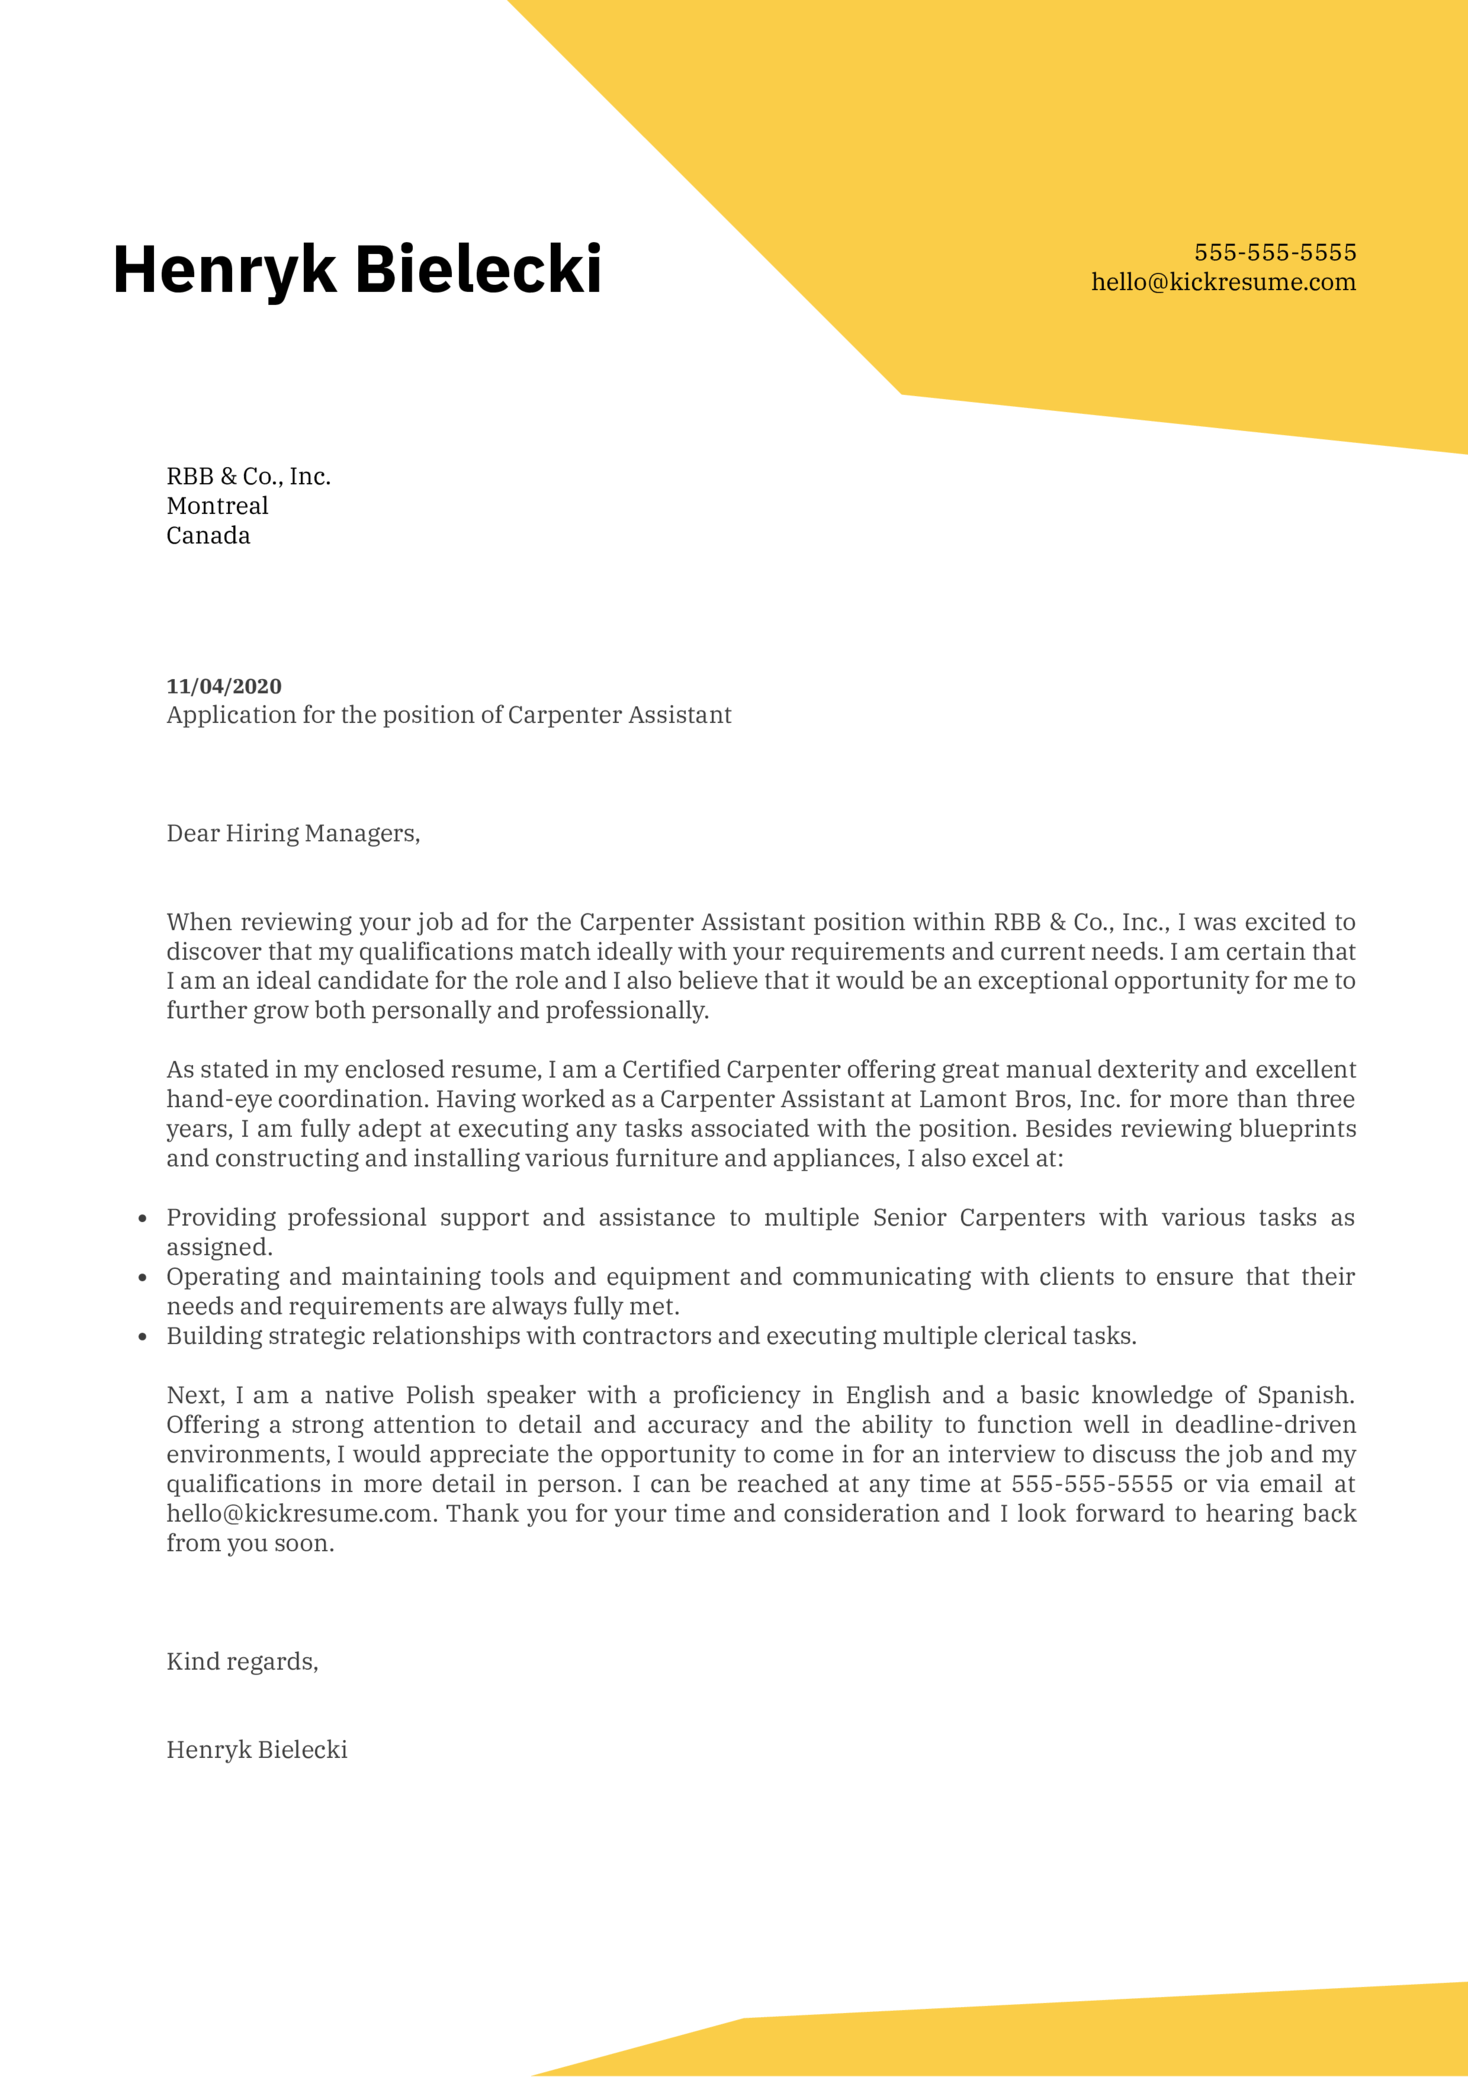 Cover Letter For Multiple Jobs from s3-eu-west-1.amazonaws.com